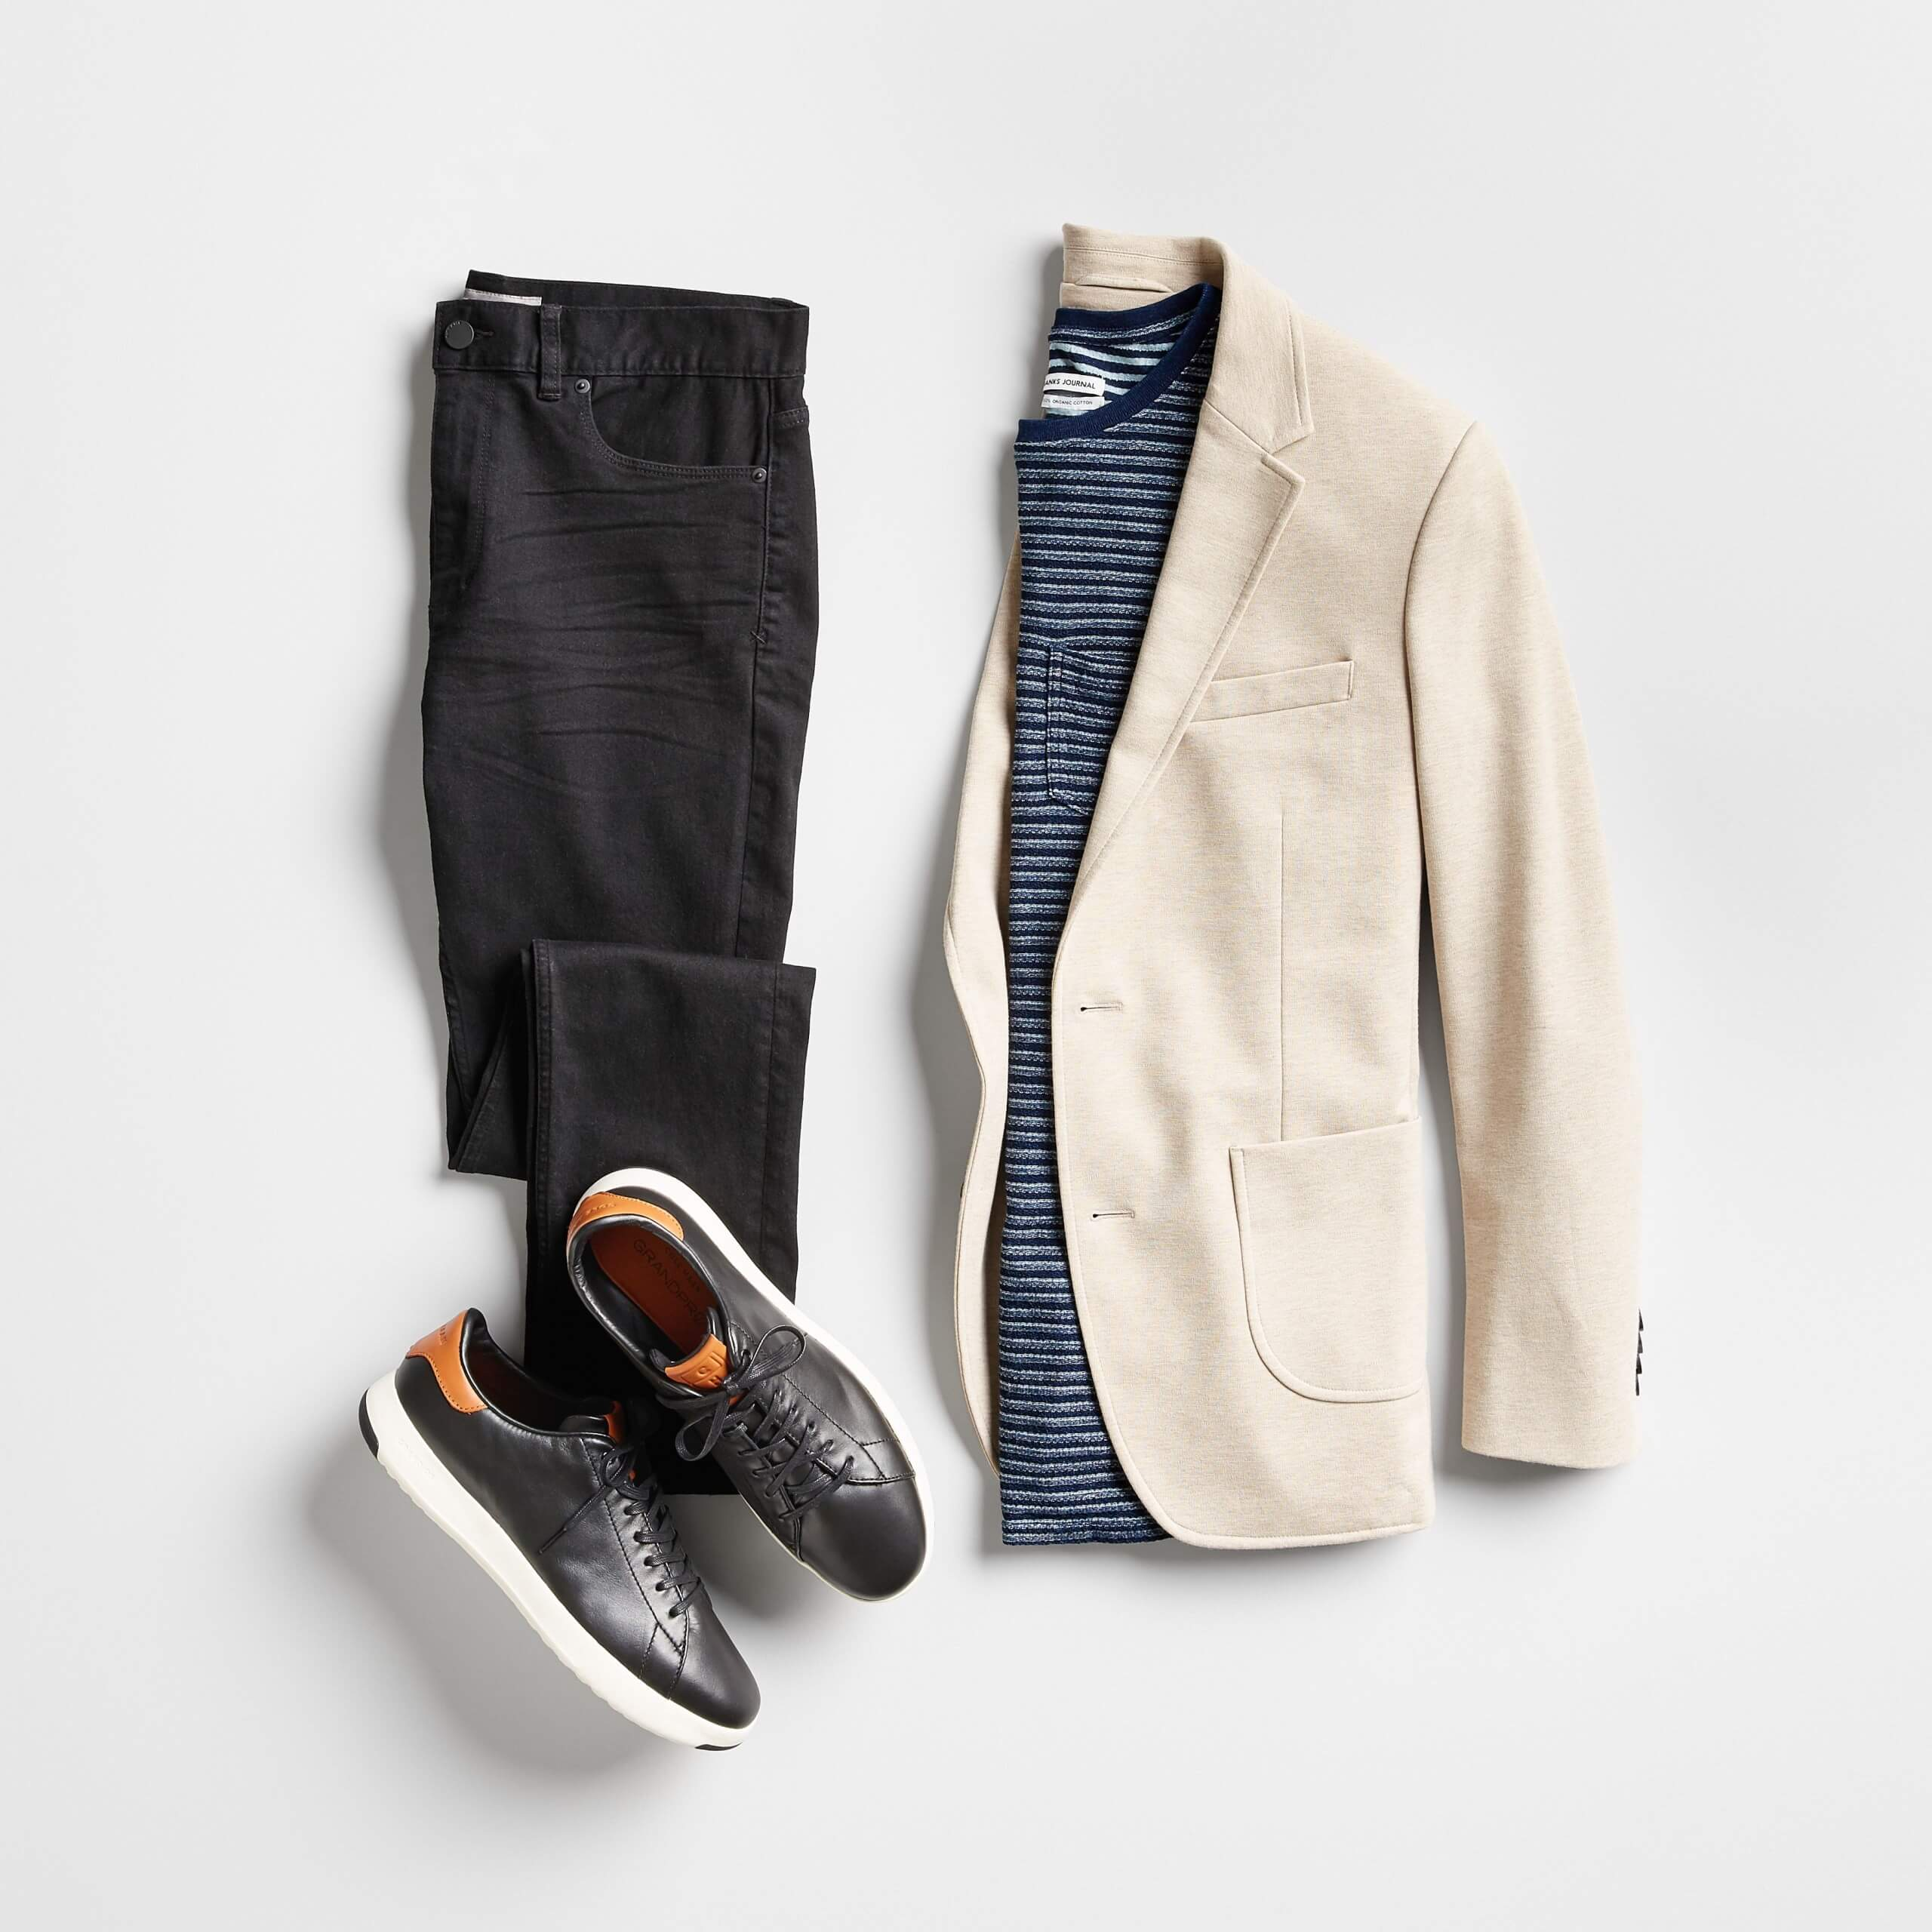 Stitch Fix Men's outfit laydown featuring a beige blazer over a navy striped tee, next to black skinny jeans and black leather sneakers.